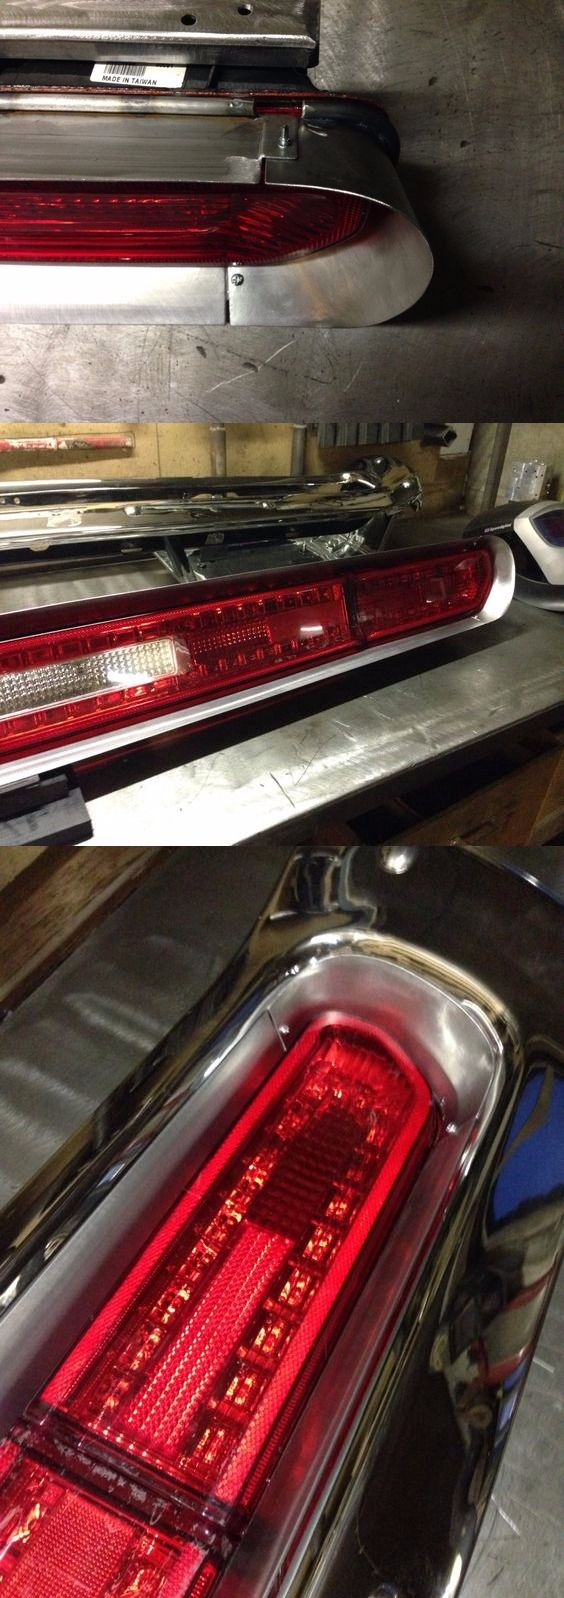 1973 dodge charger taillight conversion 2013 dodge challenger all steel frame + ...